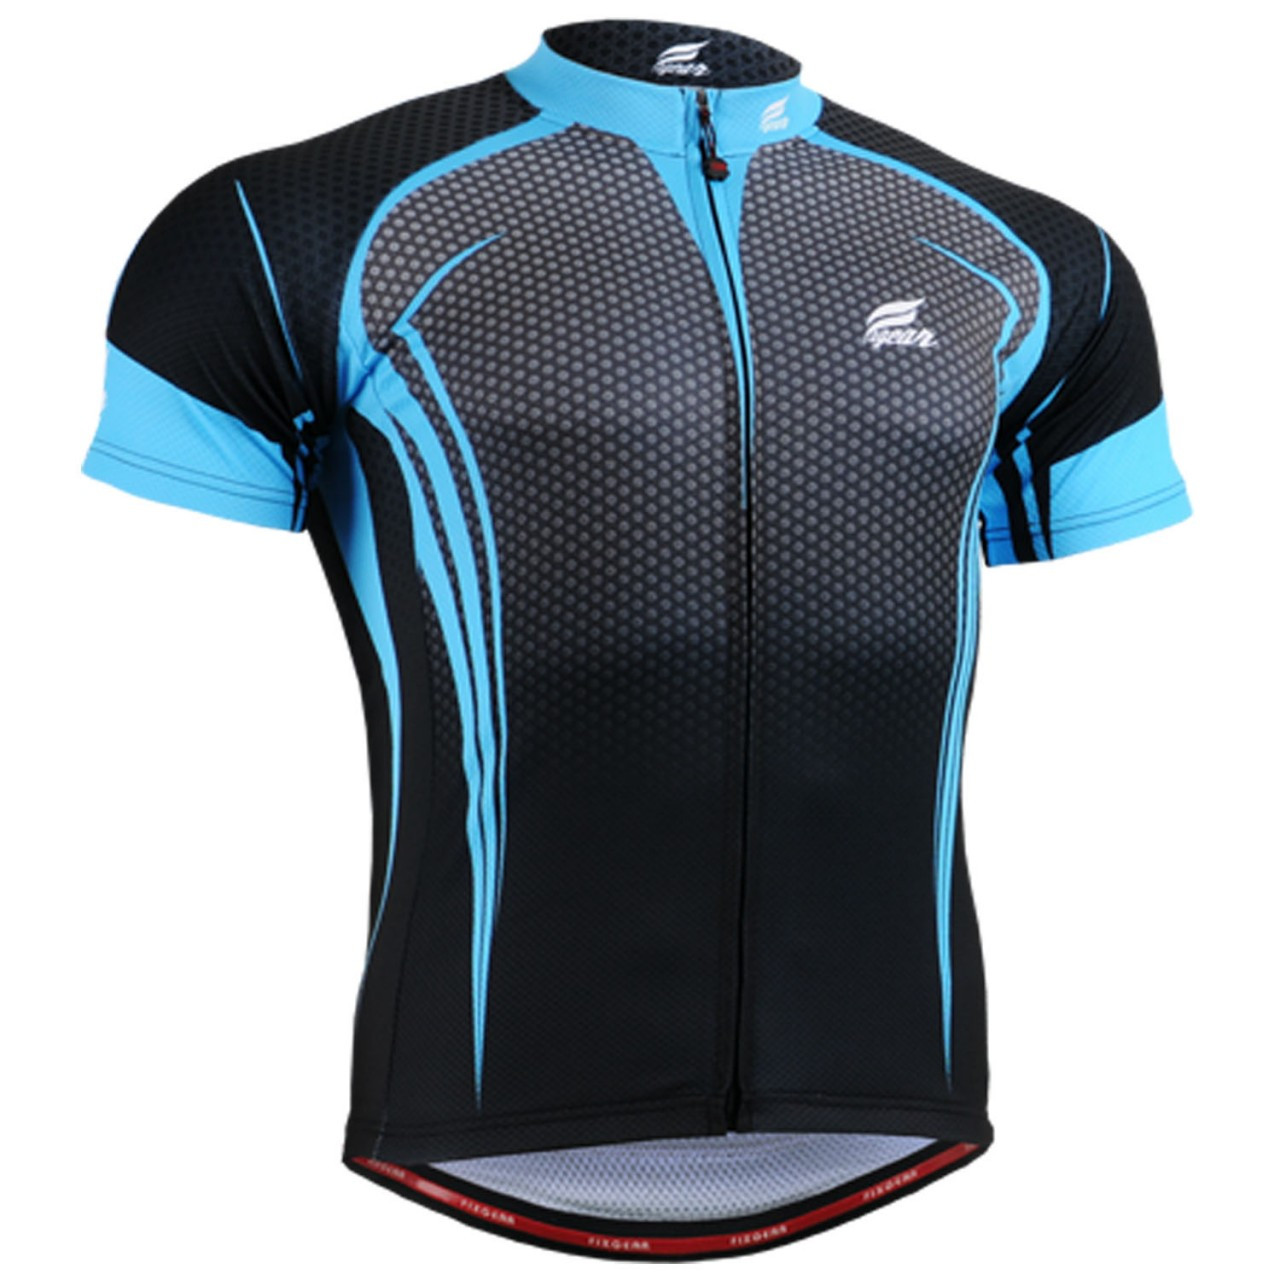 Cycling Wear Fixgear Wear Best Cut And Best Design For The Best Fit In